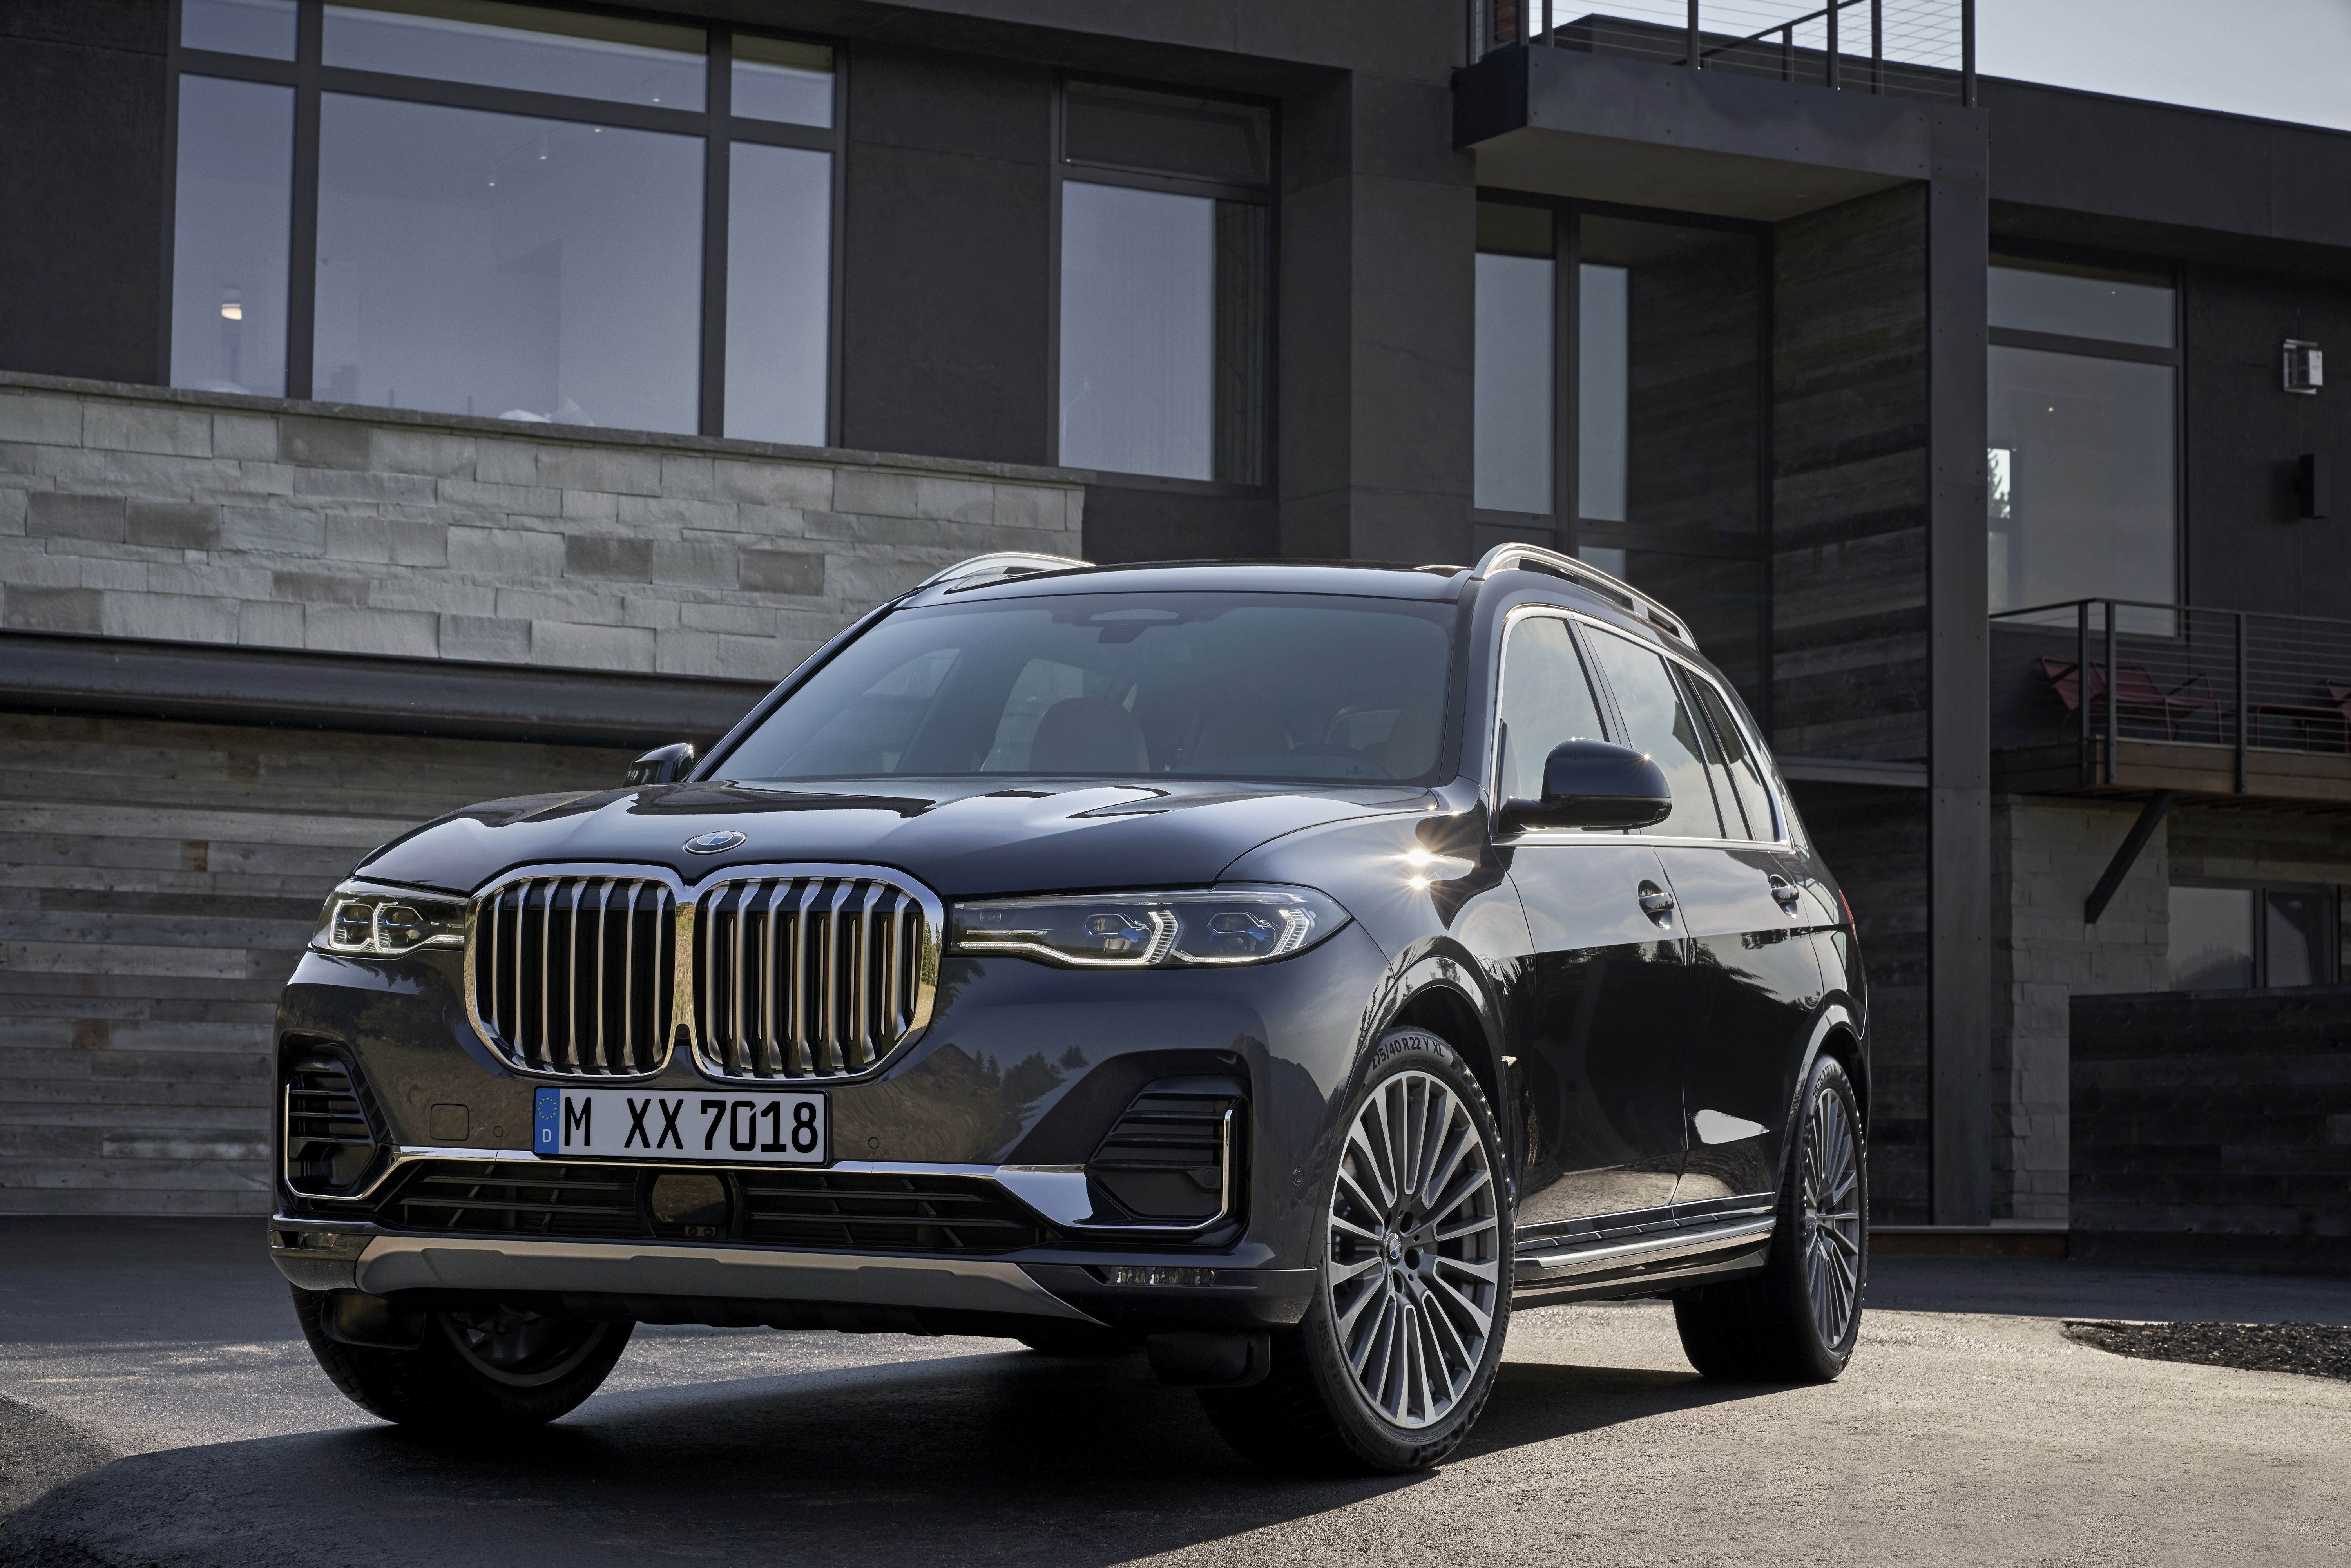 2019 Bmw X7 Price Specs Overview And Full Size Suv With Images